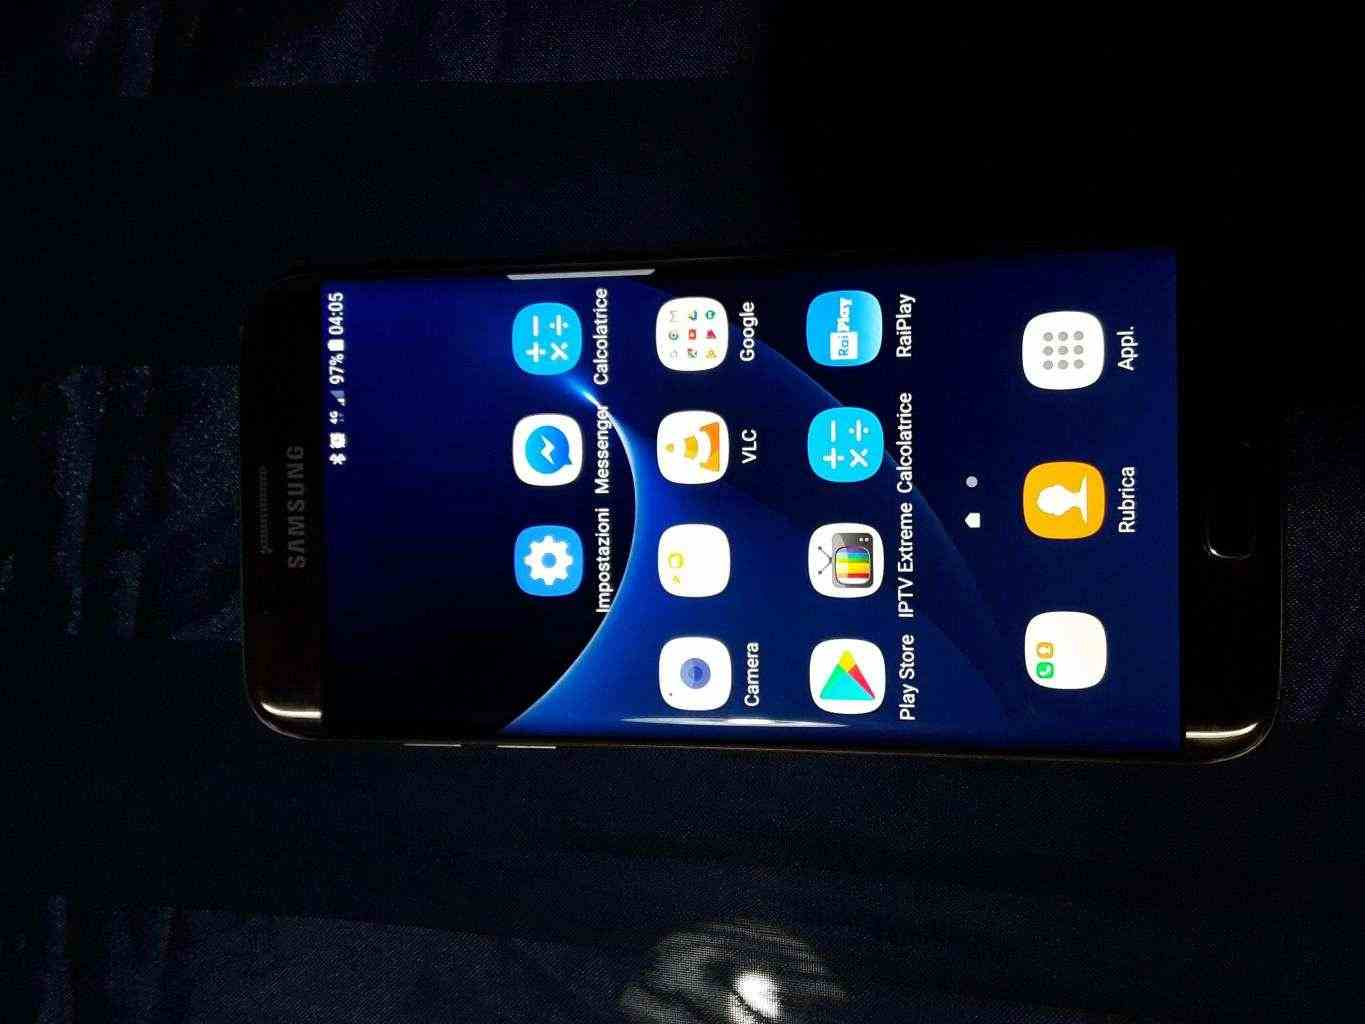 samsung s7 edge 32 gb